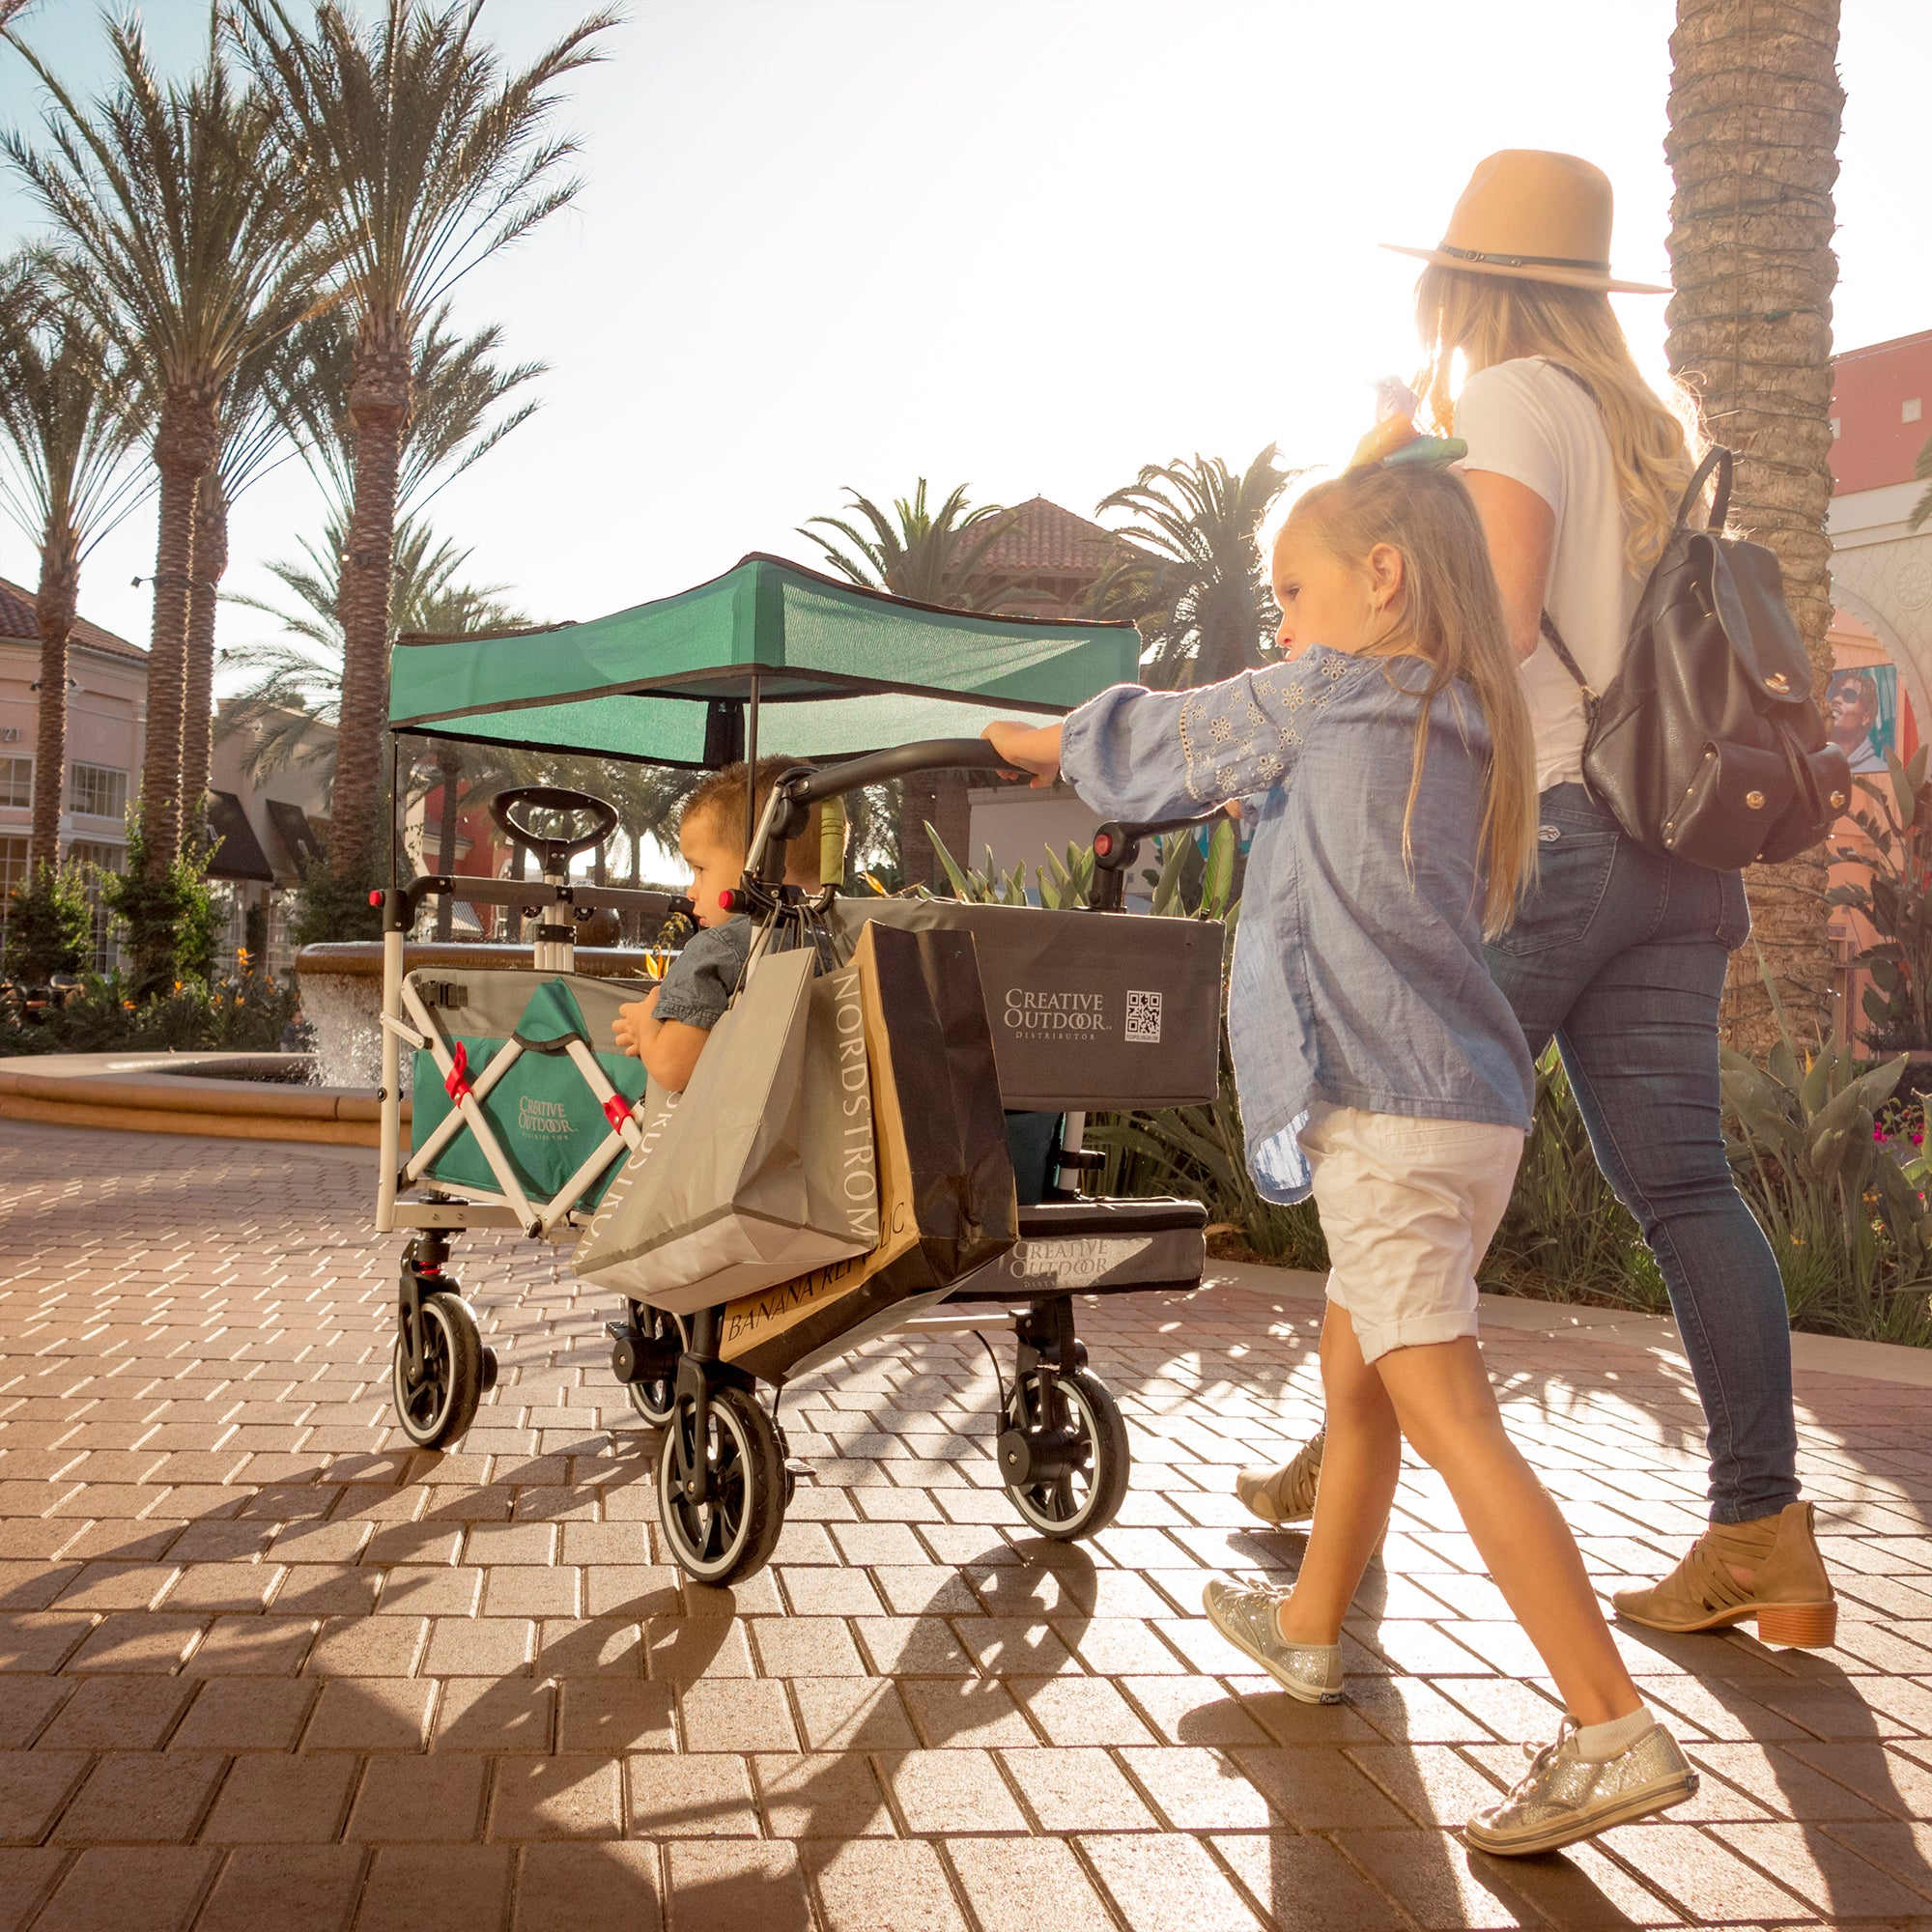 Push Pull TITANIUM SERIES Folding Wagon Stroller with Canopy | Teal